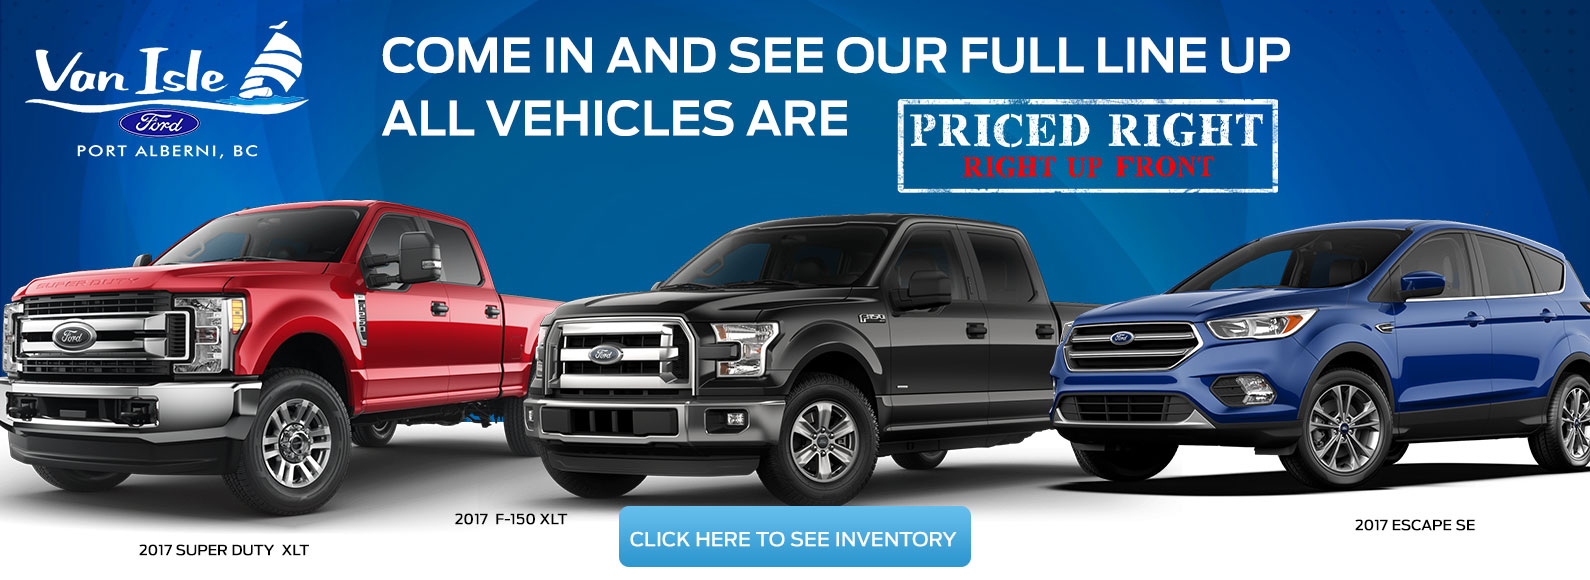 New Ford Cars, SUVs and Trucks Inventory